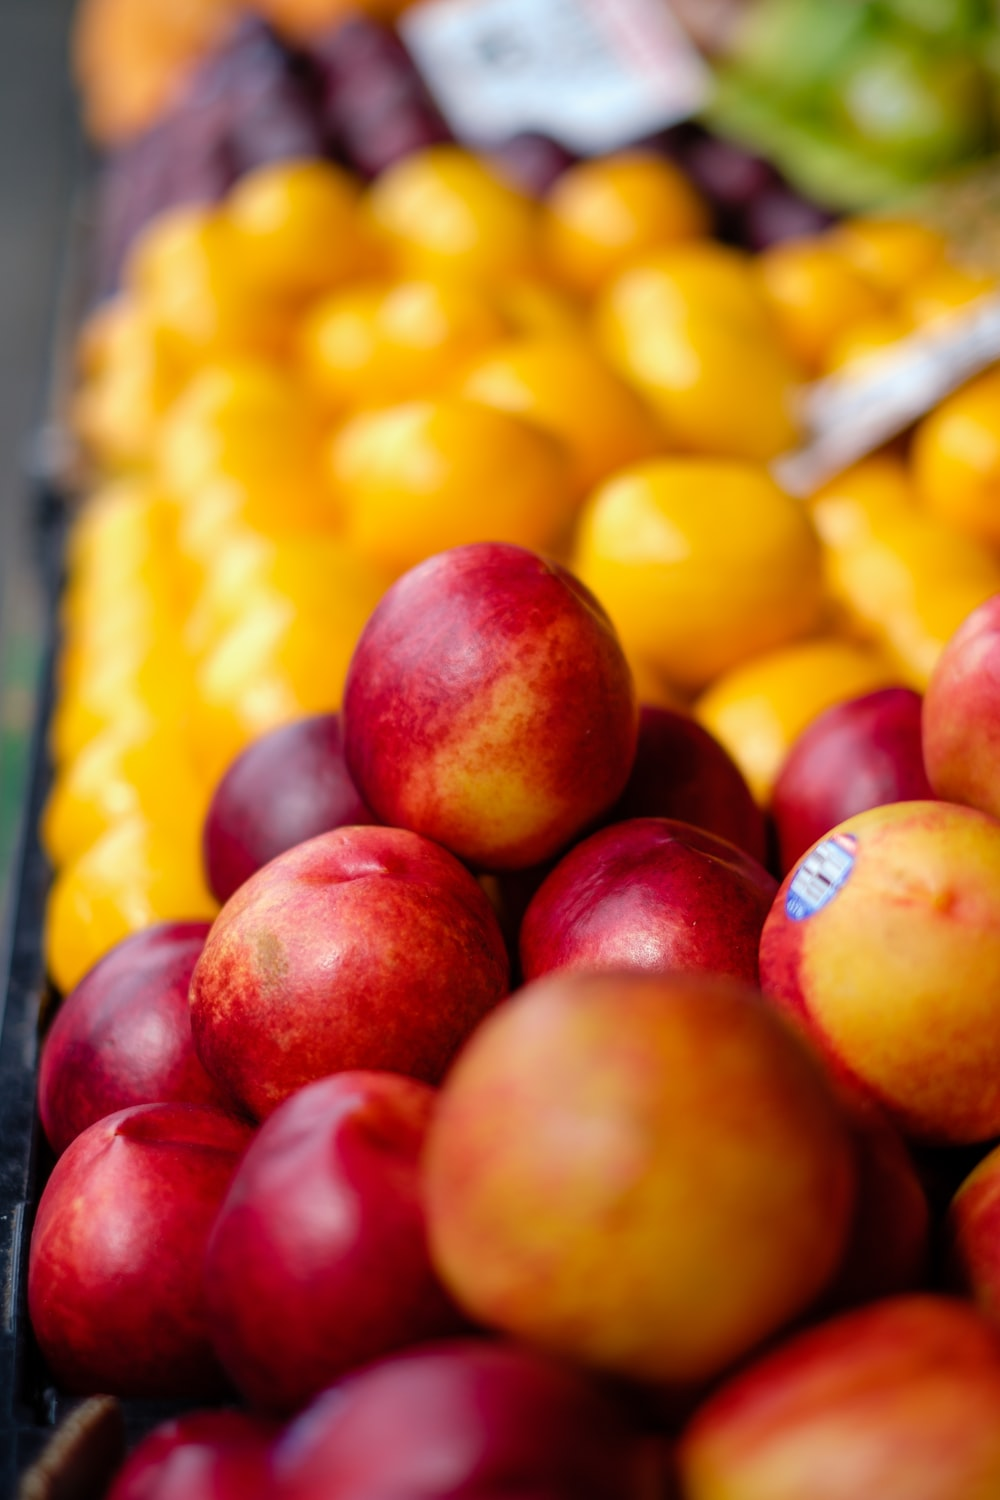 shallow focus photography of red apple fruits